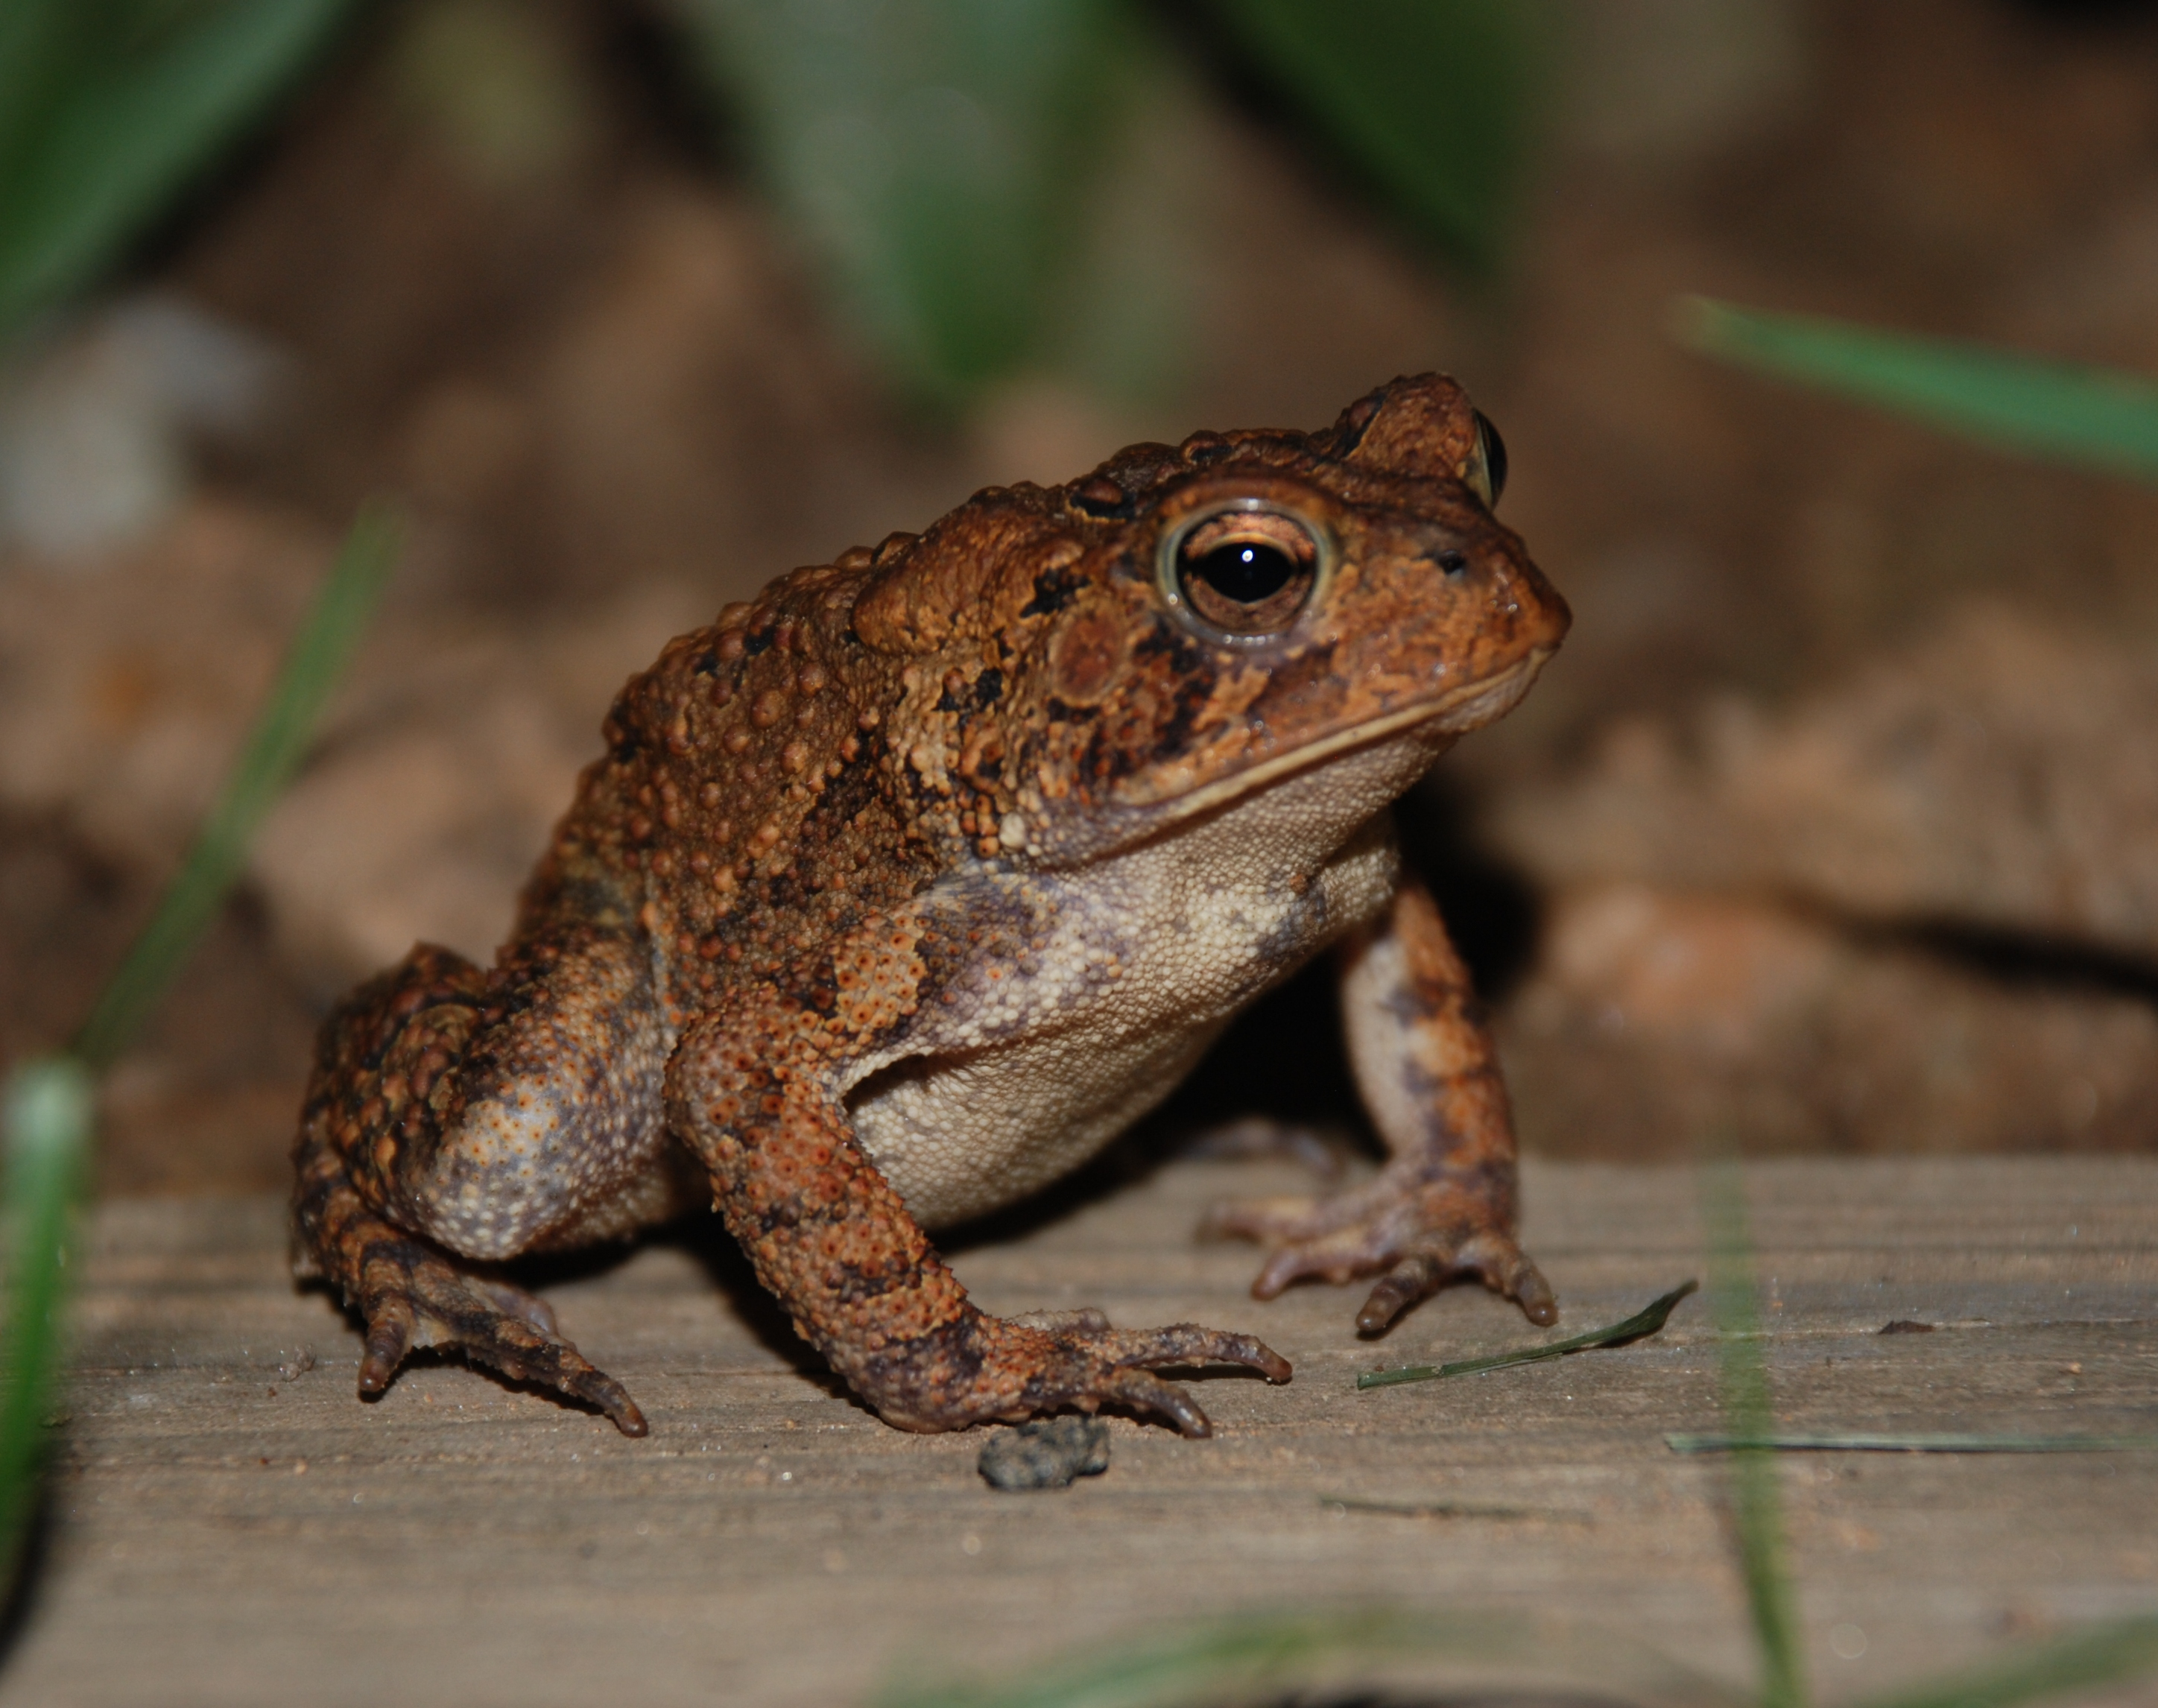 What Are The Differences Between The Call Of One Male Frog